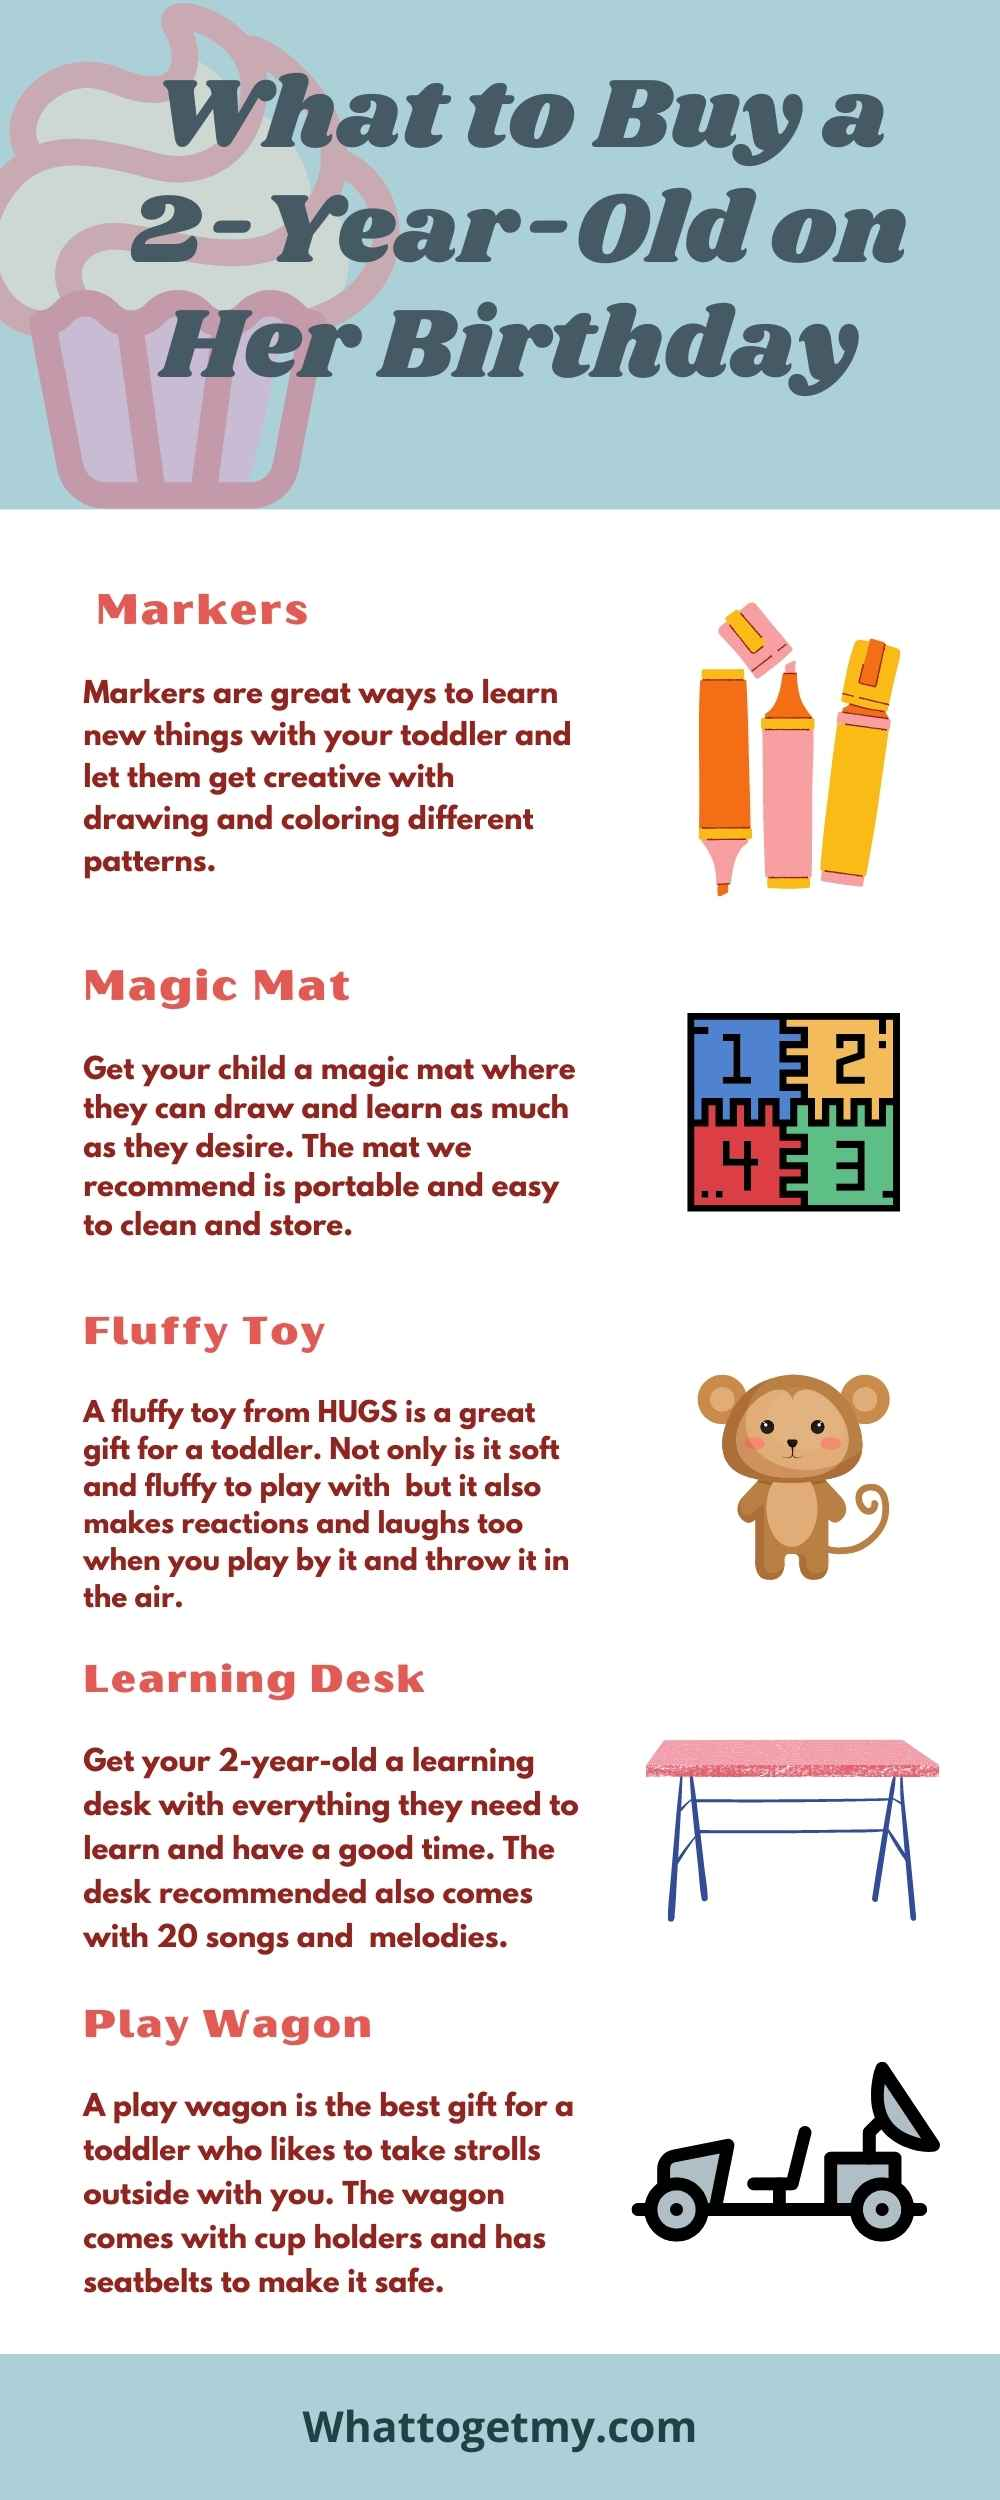 What to Buy a 2-Year-Old on Her Birthday